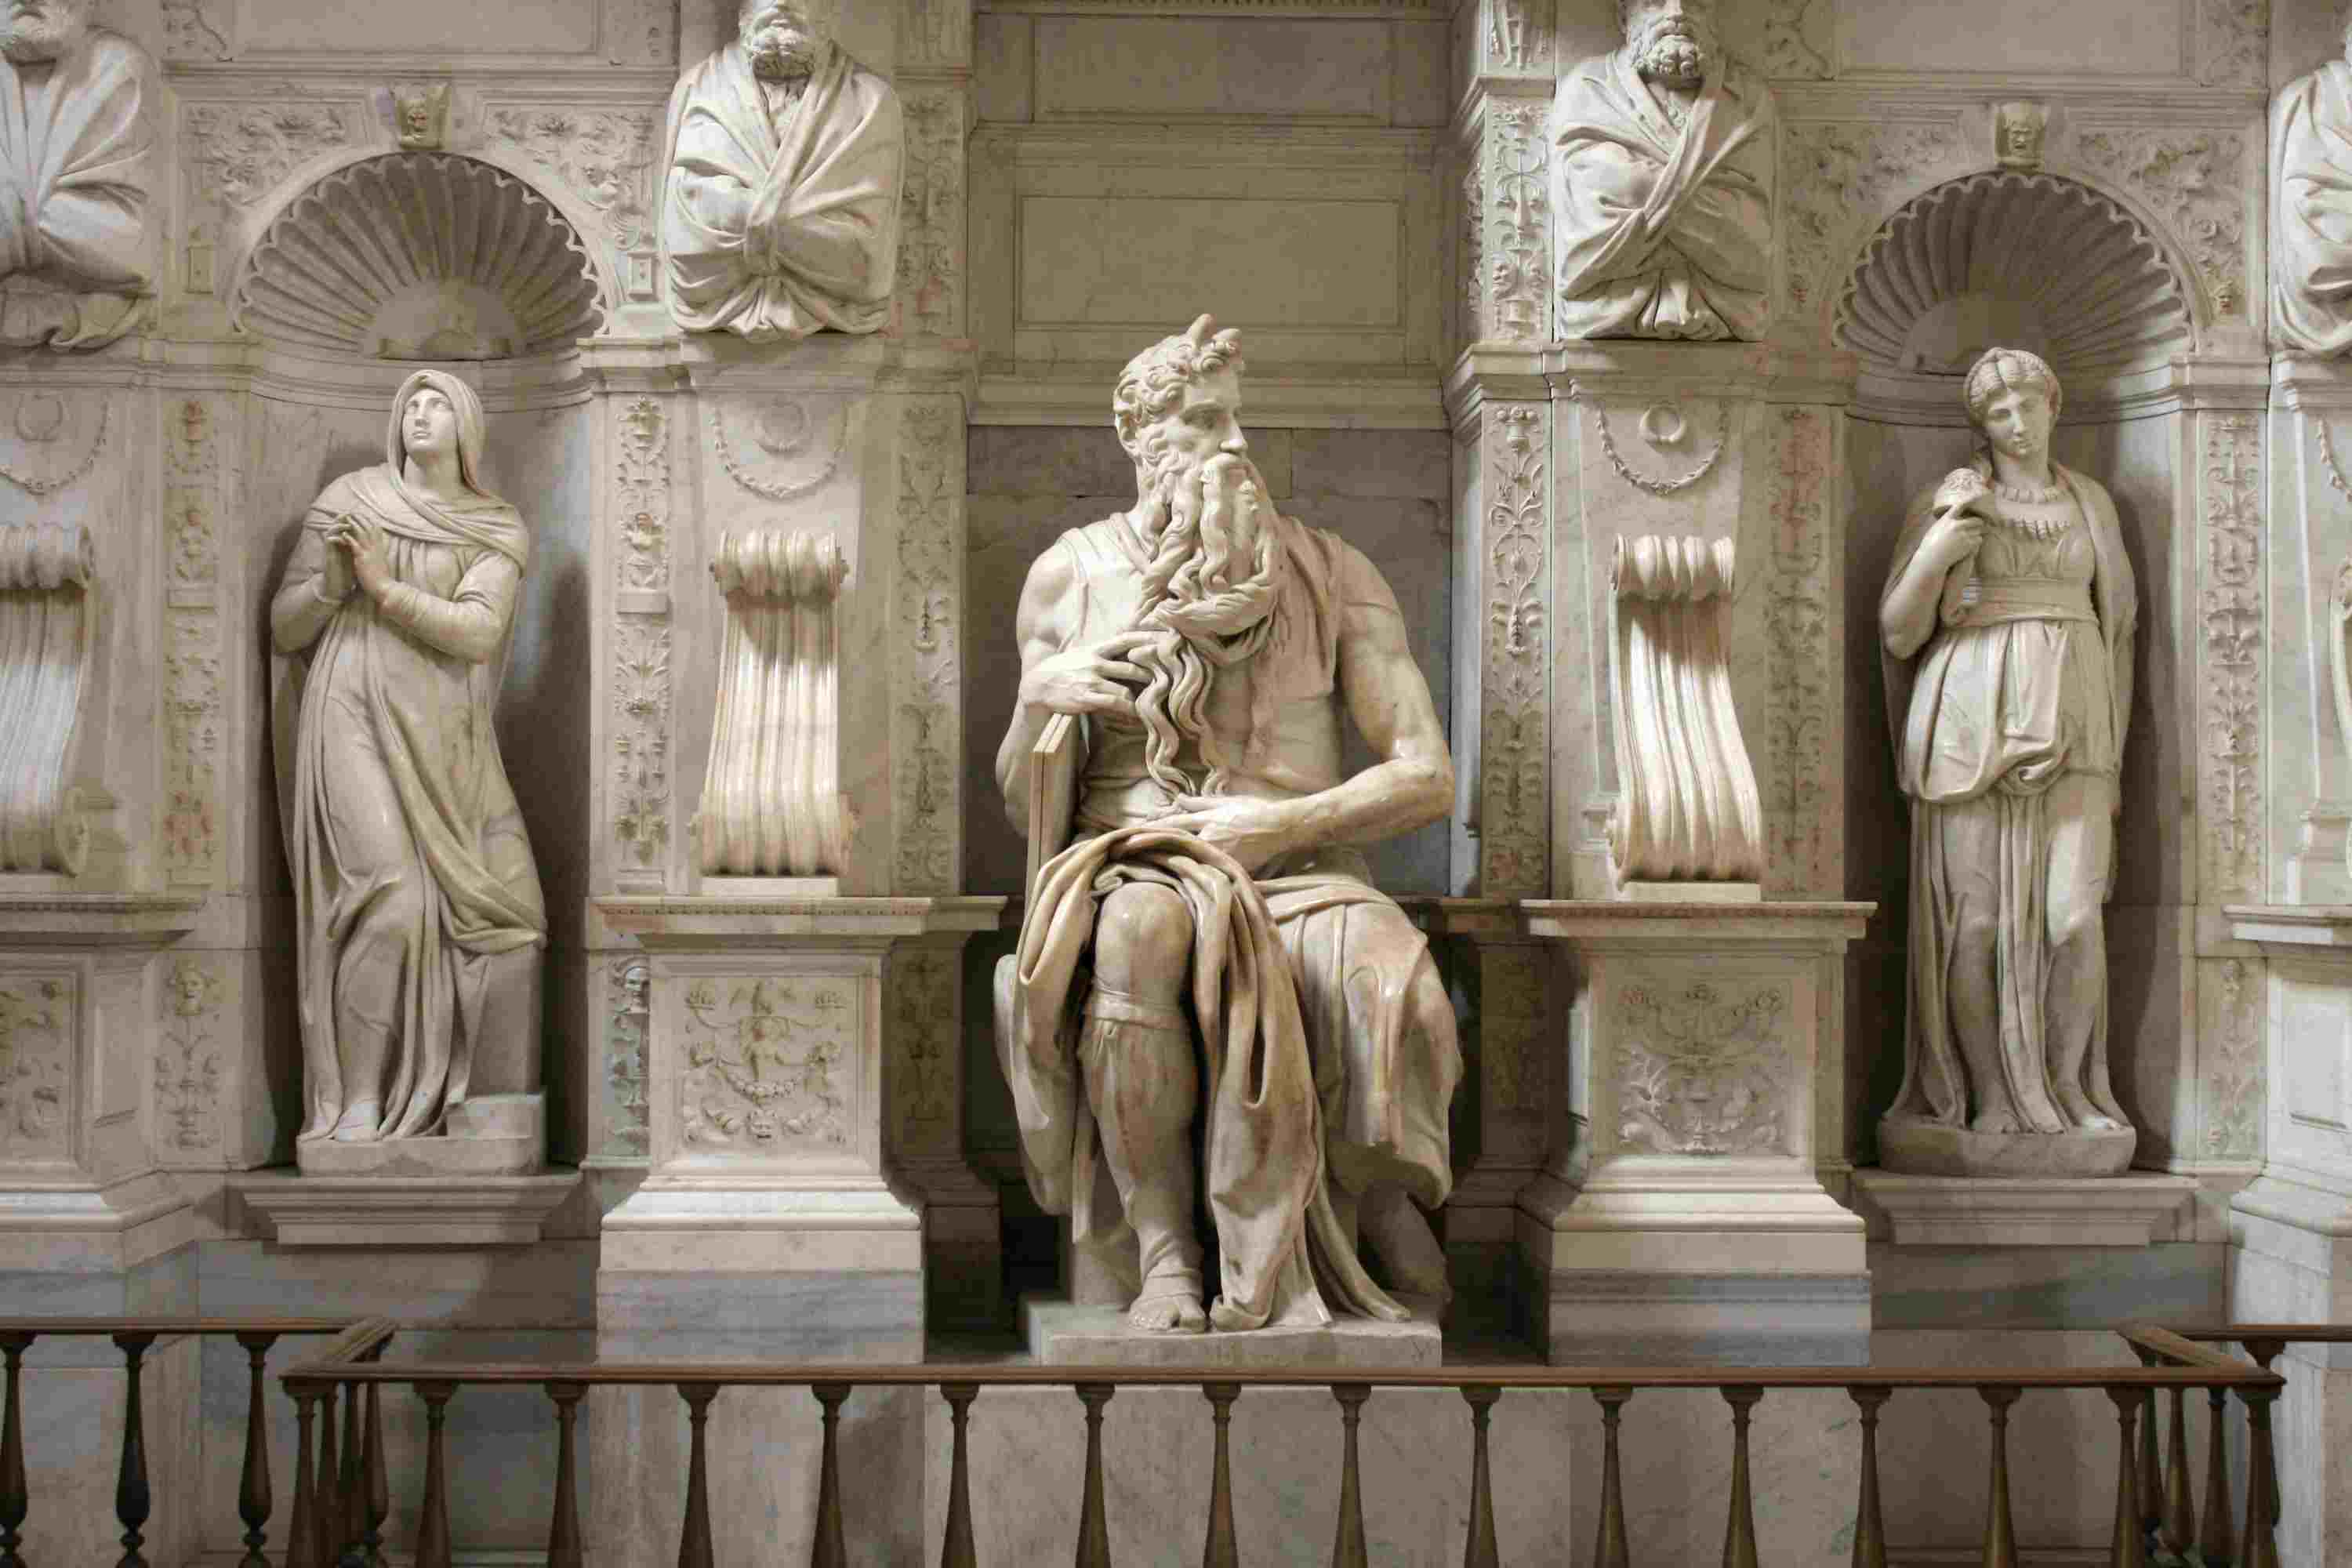 Statue of Moses by Michelangelo in Rome, Italy